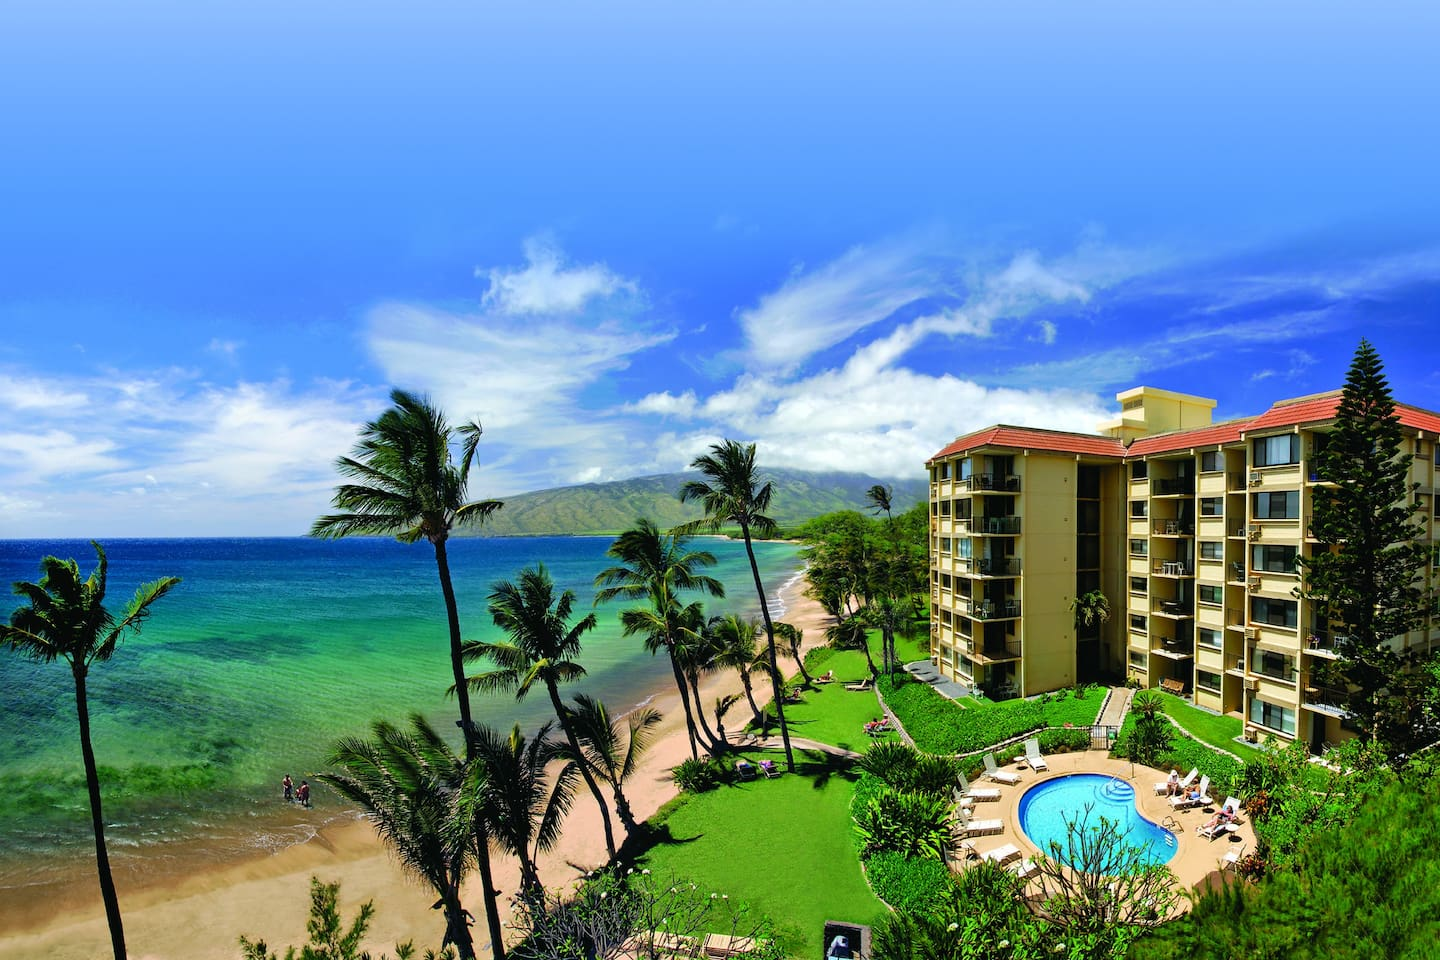 Kealia Resort in sunny South Maui!